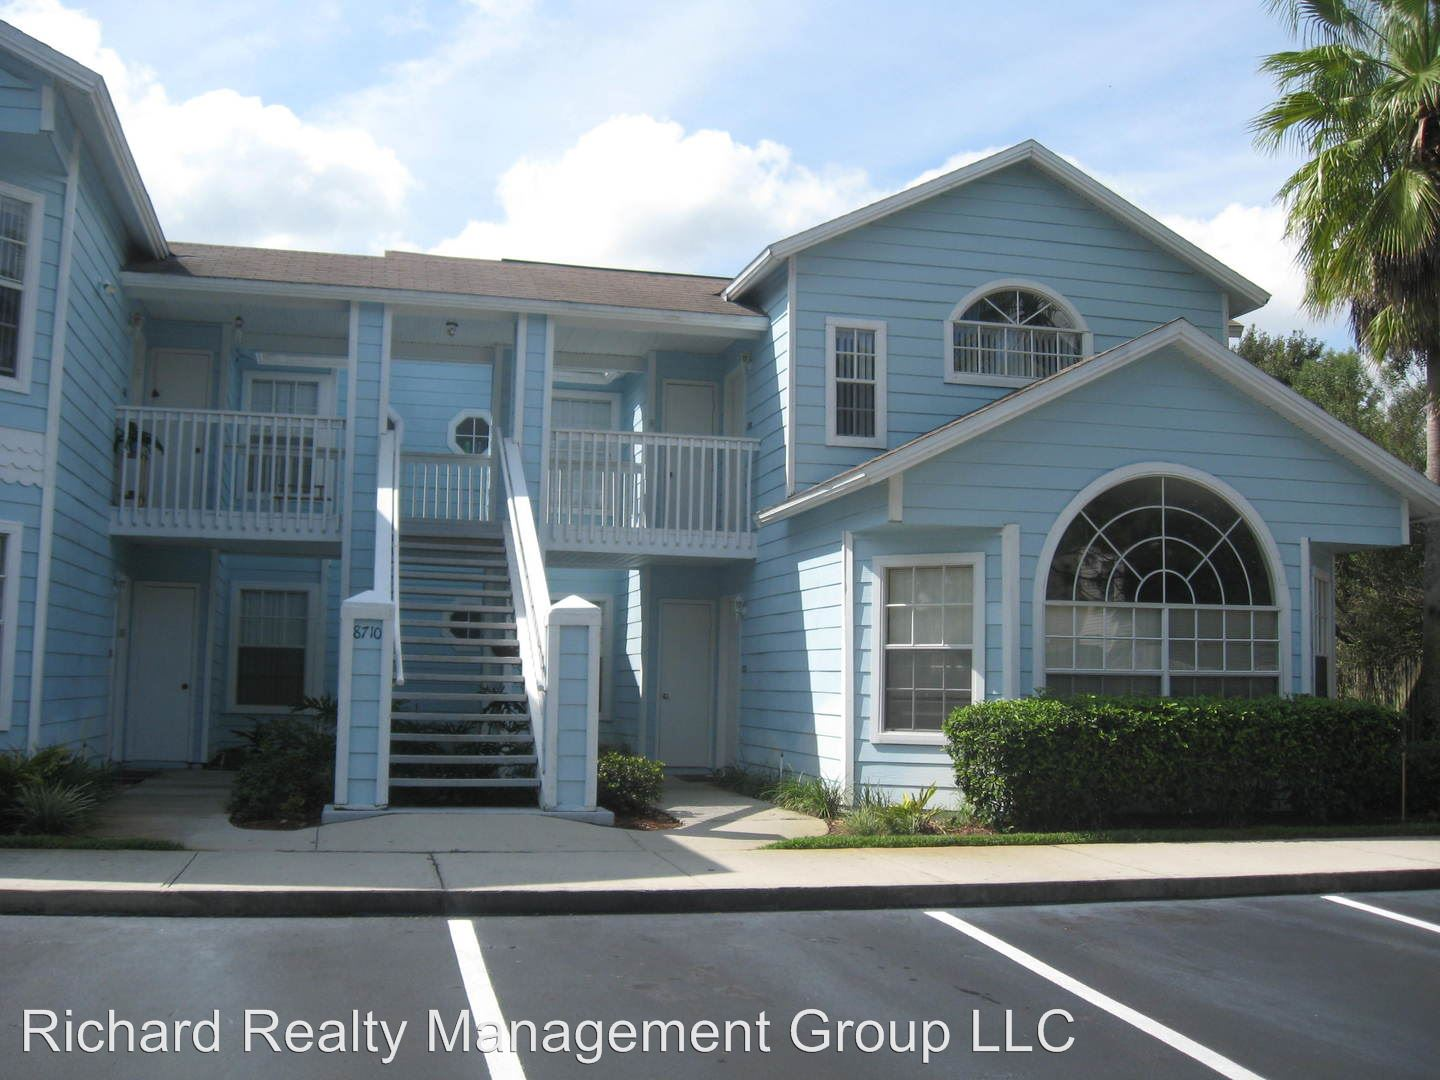 Kissimmee Houses For Rent Apartments In Kissimmee Florida Rental Properties Homes